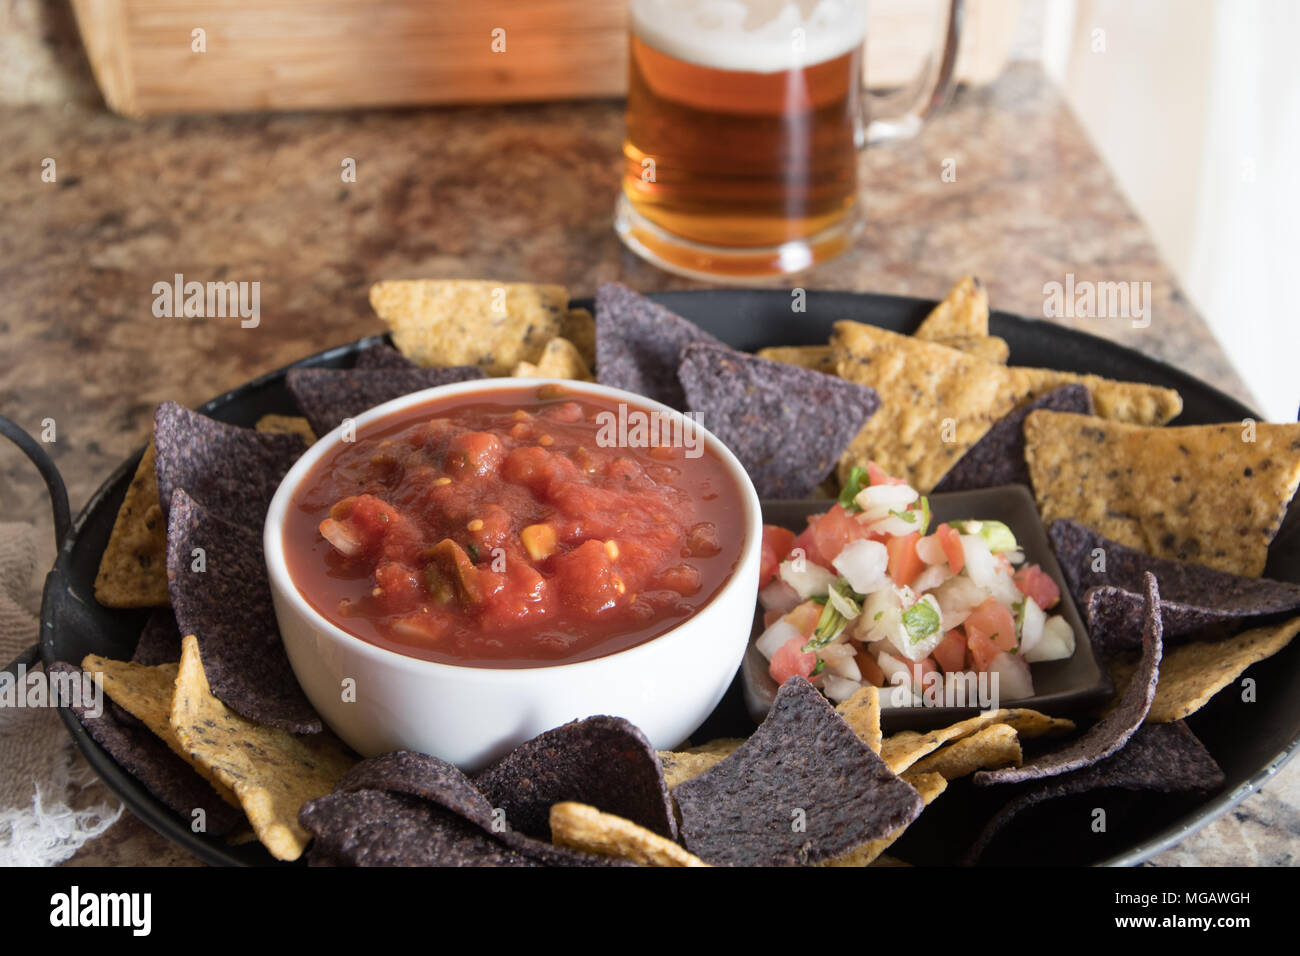 Platter Of Chips Pico De Gallo Salsa And Beer Stock Photo Alamy